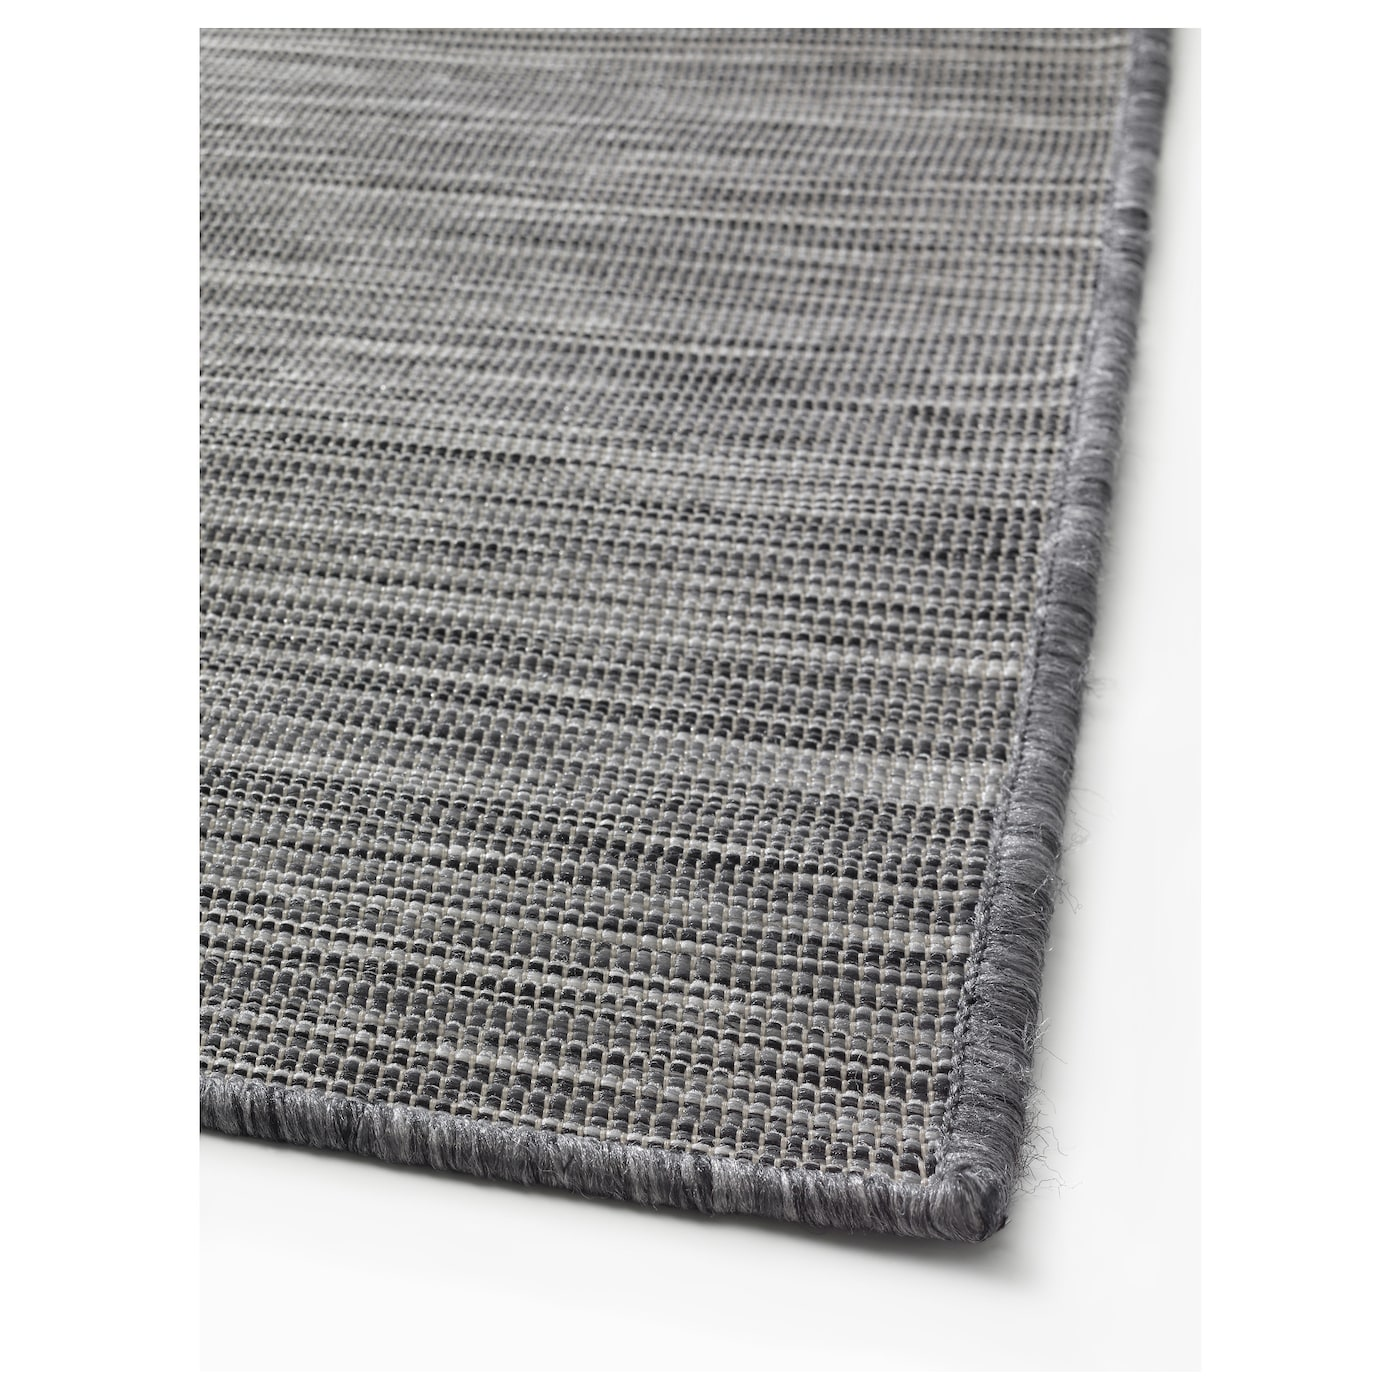 Hodde rug flatwoven in outdoor grey black 160x230 cm ikea for Outdoor teppich ikea